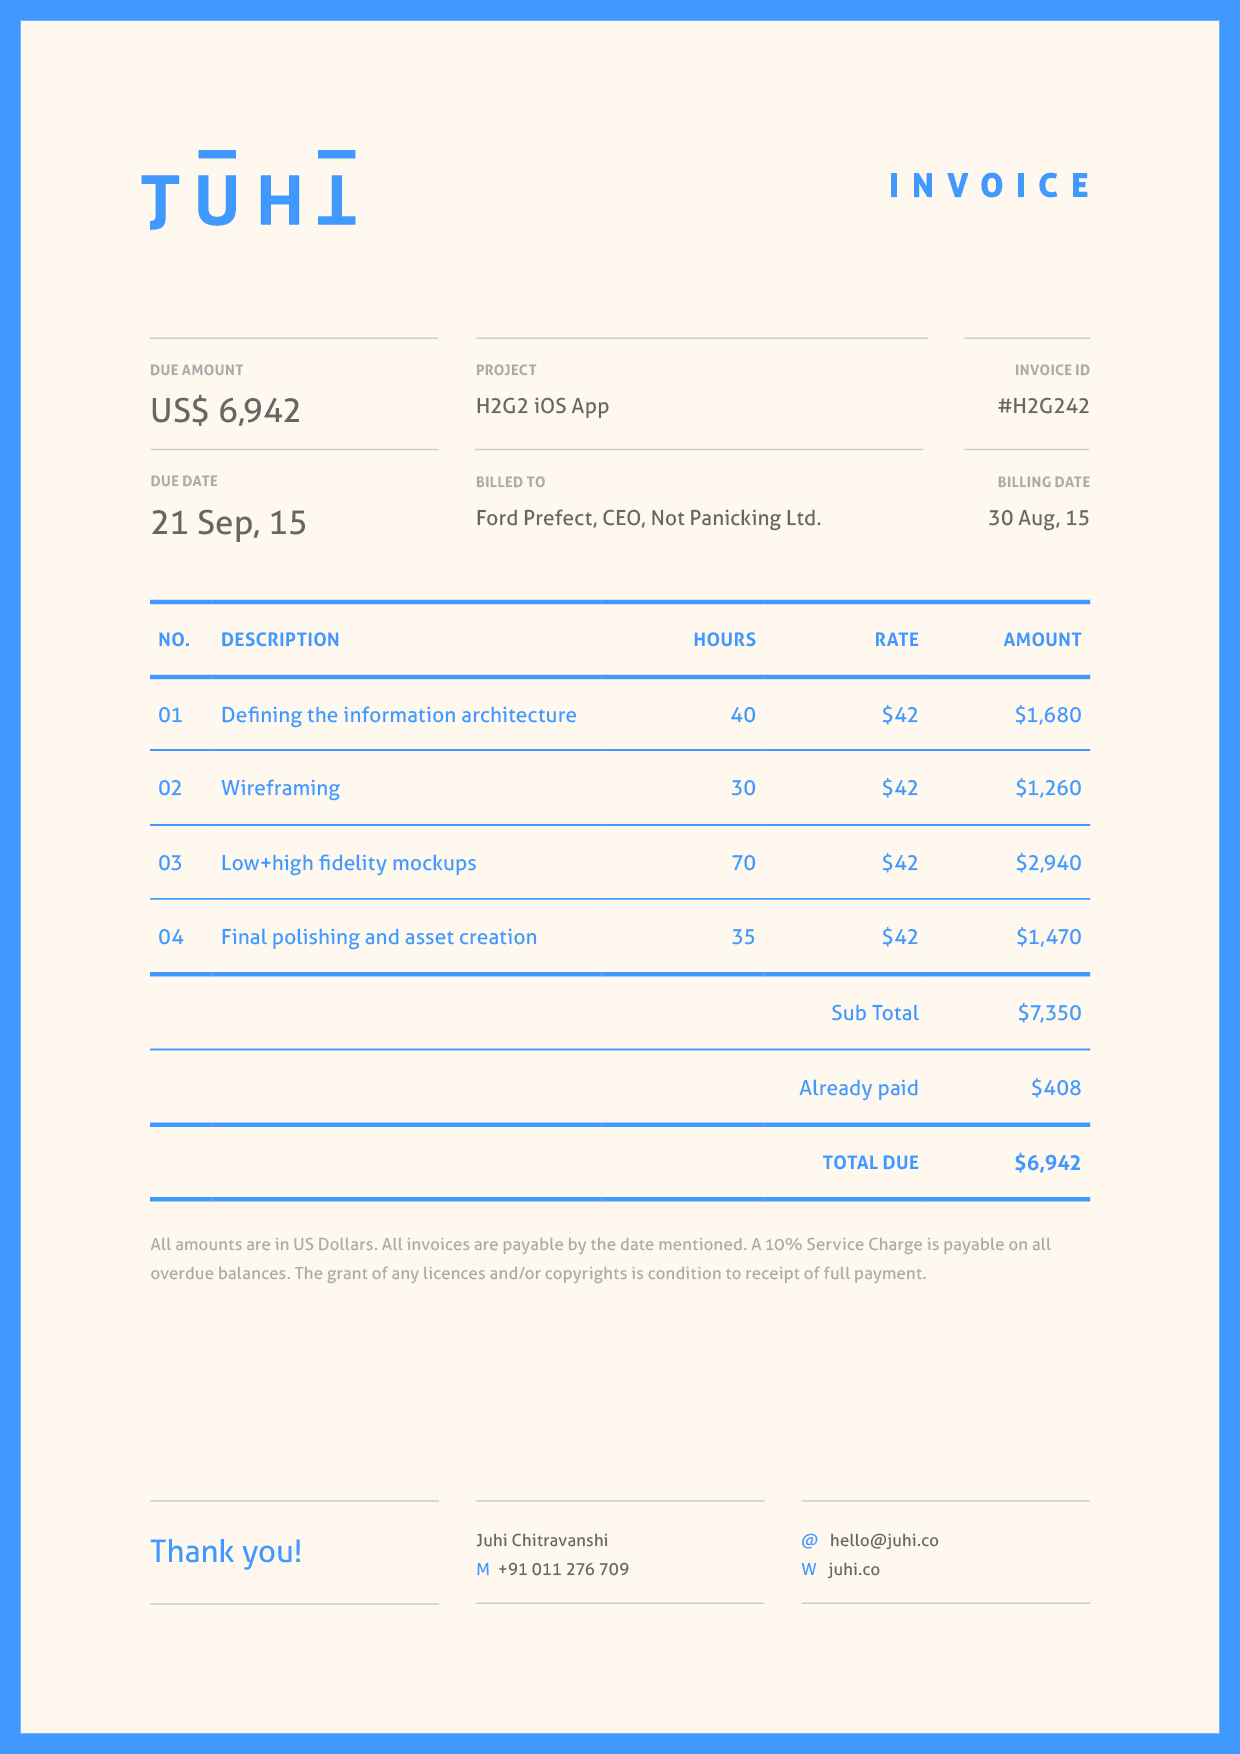 Pigbrotherus  Pretty Dont Hold Back On Your Invoice  Inspiring Designs  With Marvelous Invoice By Juhi Chitravanshi Follow With Breathtaking Online Receipt Template Also Receipt Pdf In Addition Uscis Receipt Status And Costco Returns Without Receipt As Well As Sales Receipt Form Additionally Receipt Of Payment Template From Inspirationfeedcom With Pigbrotherus  Marvelous Dont Hold Back On Your Invoice  Inspiring Designs  With Breathtaking Invoice By Juhi Chitravanshi Follow And Pretty Online Receipt Template Also Receipt Pdf In Addition Uscis Receipt Status From Inspirationfeedcom